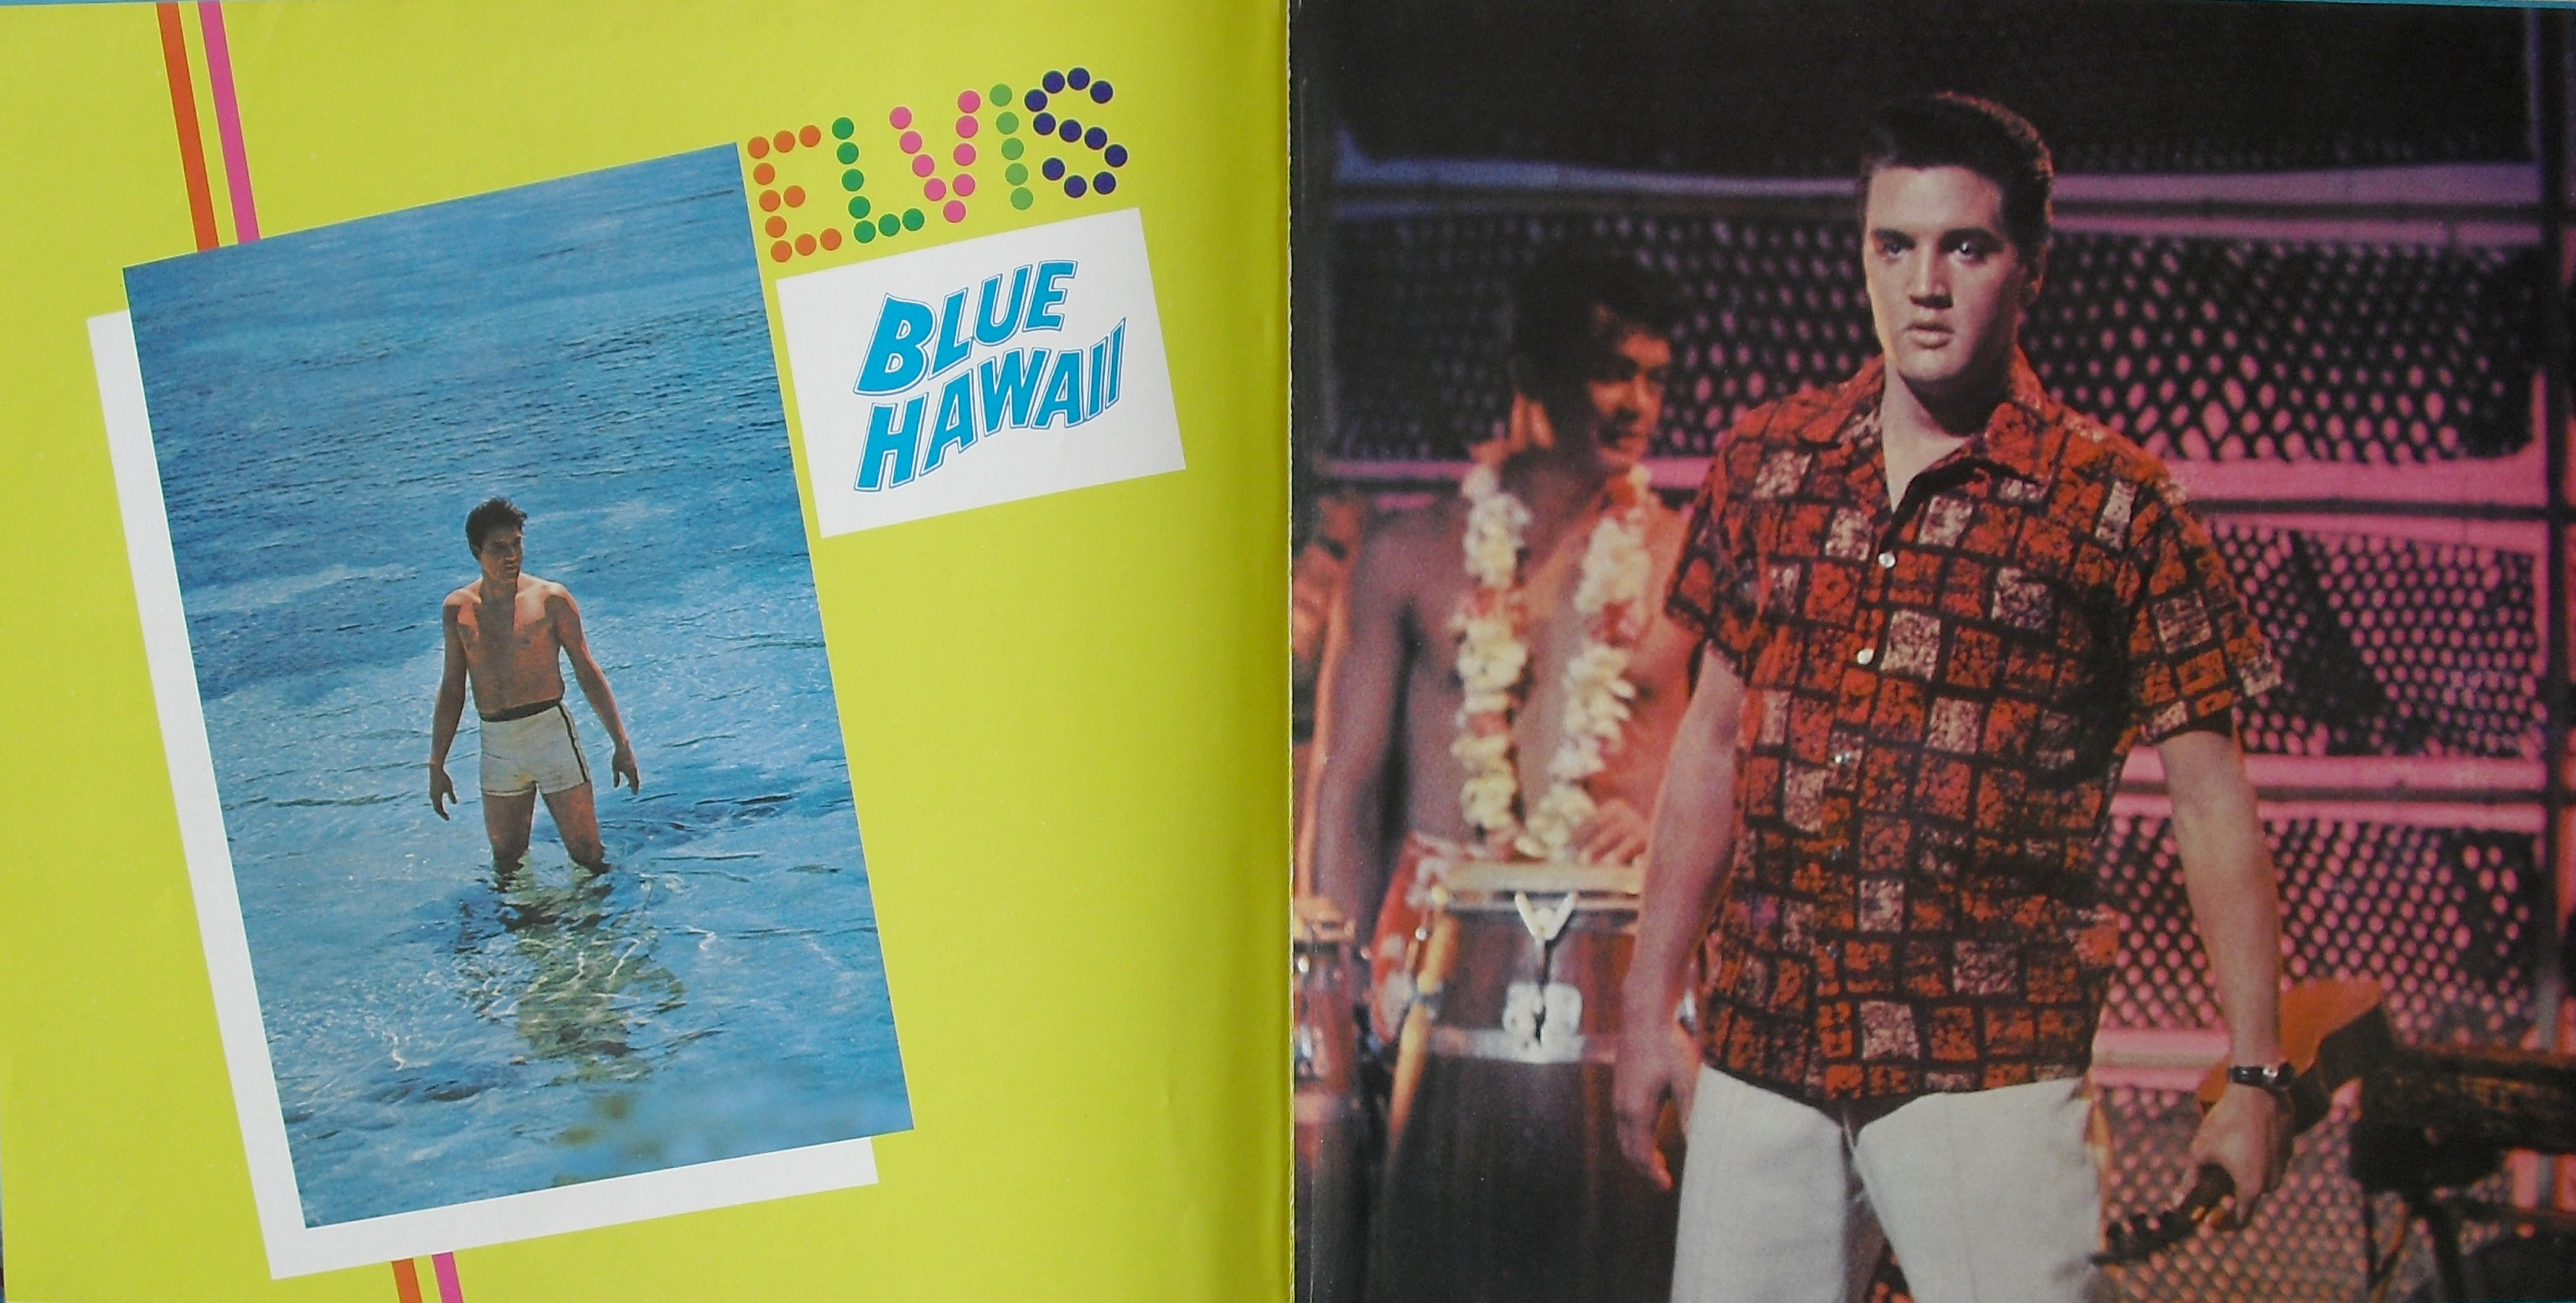 BLUE HAWAII 043ok5f